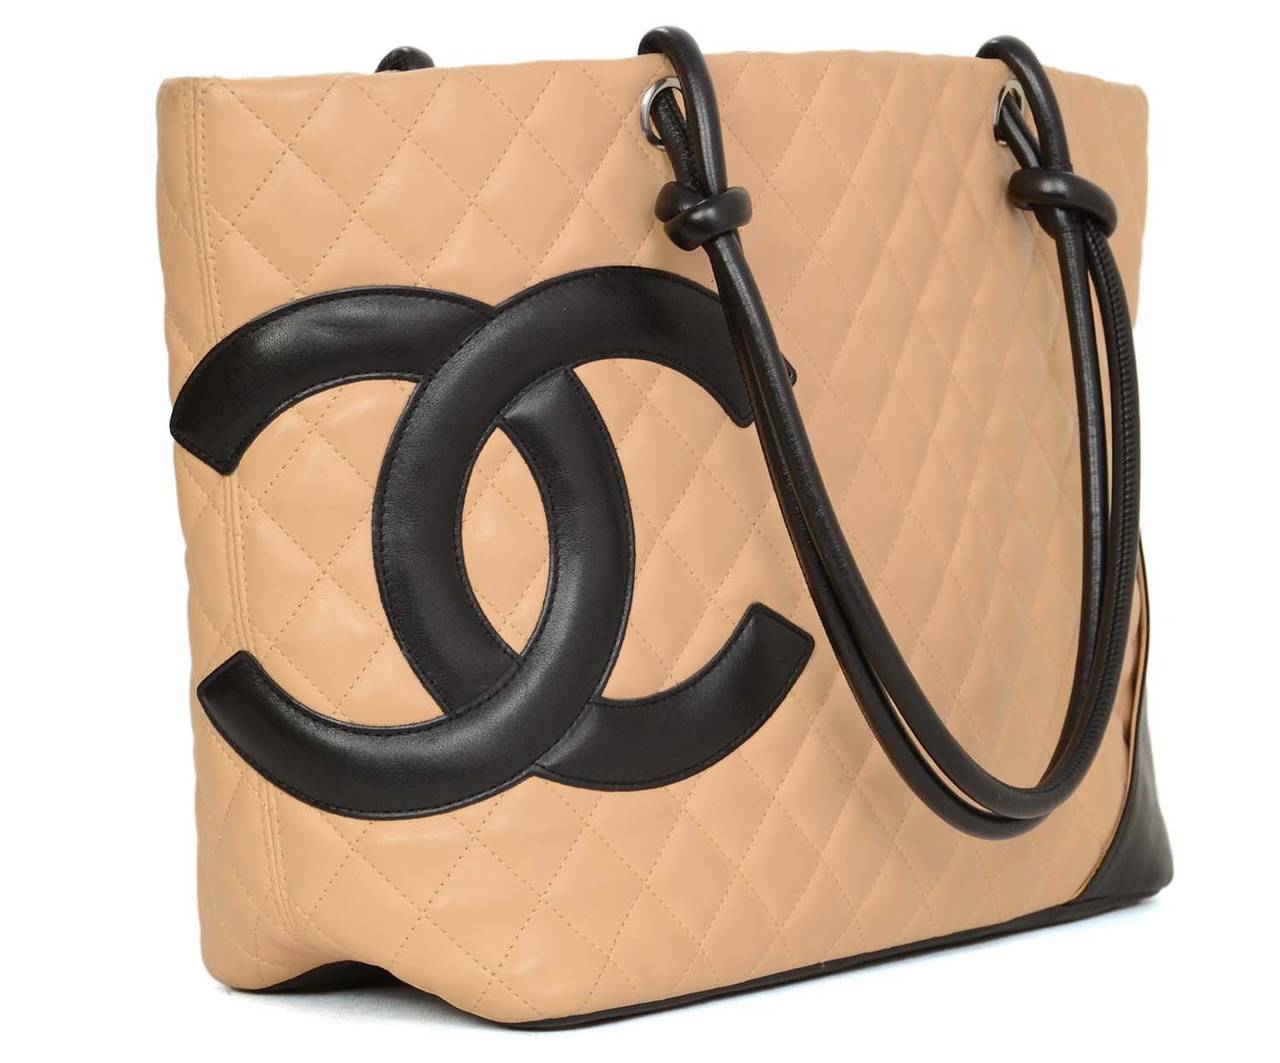 19b0f920ab88 CHANEL Tan/Black Quilted Leather Large Cambon Tote Bag Features interior  leather strap with lobster